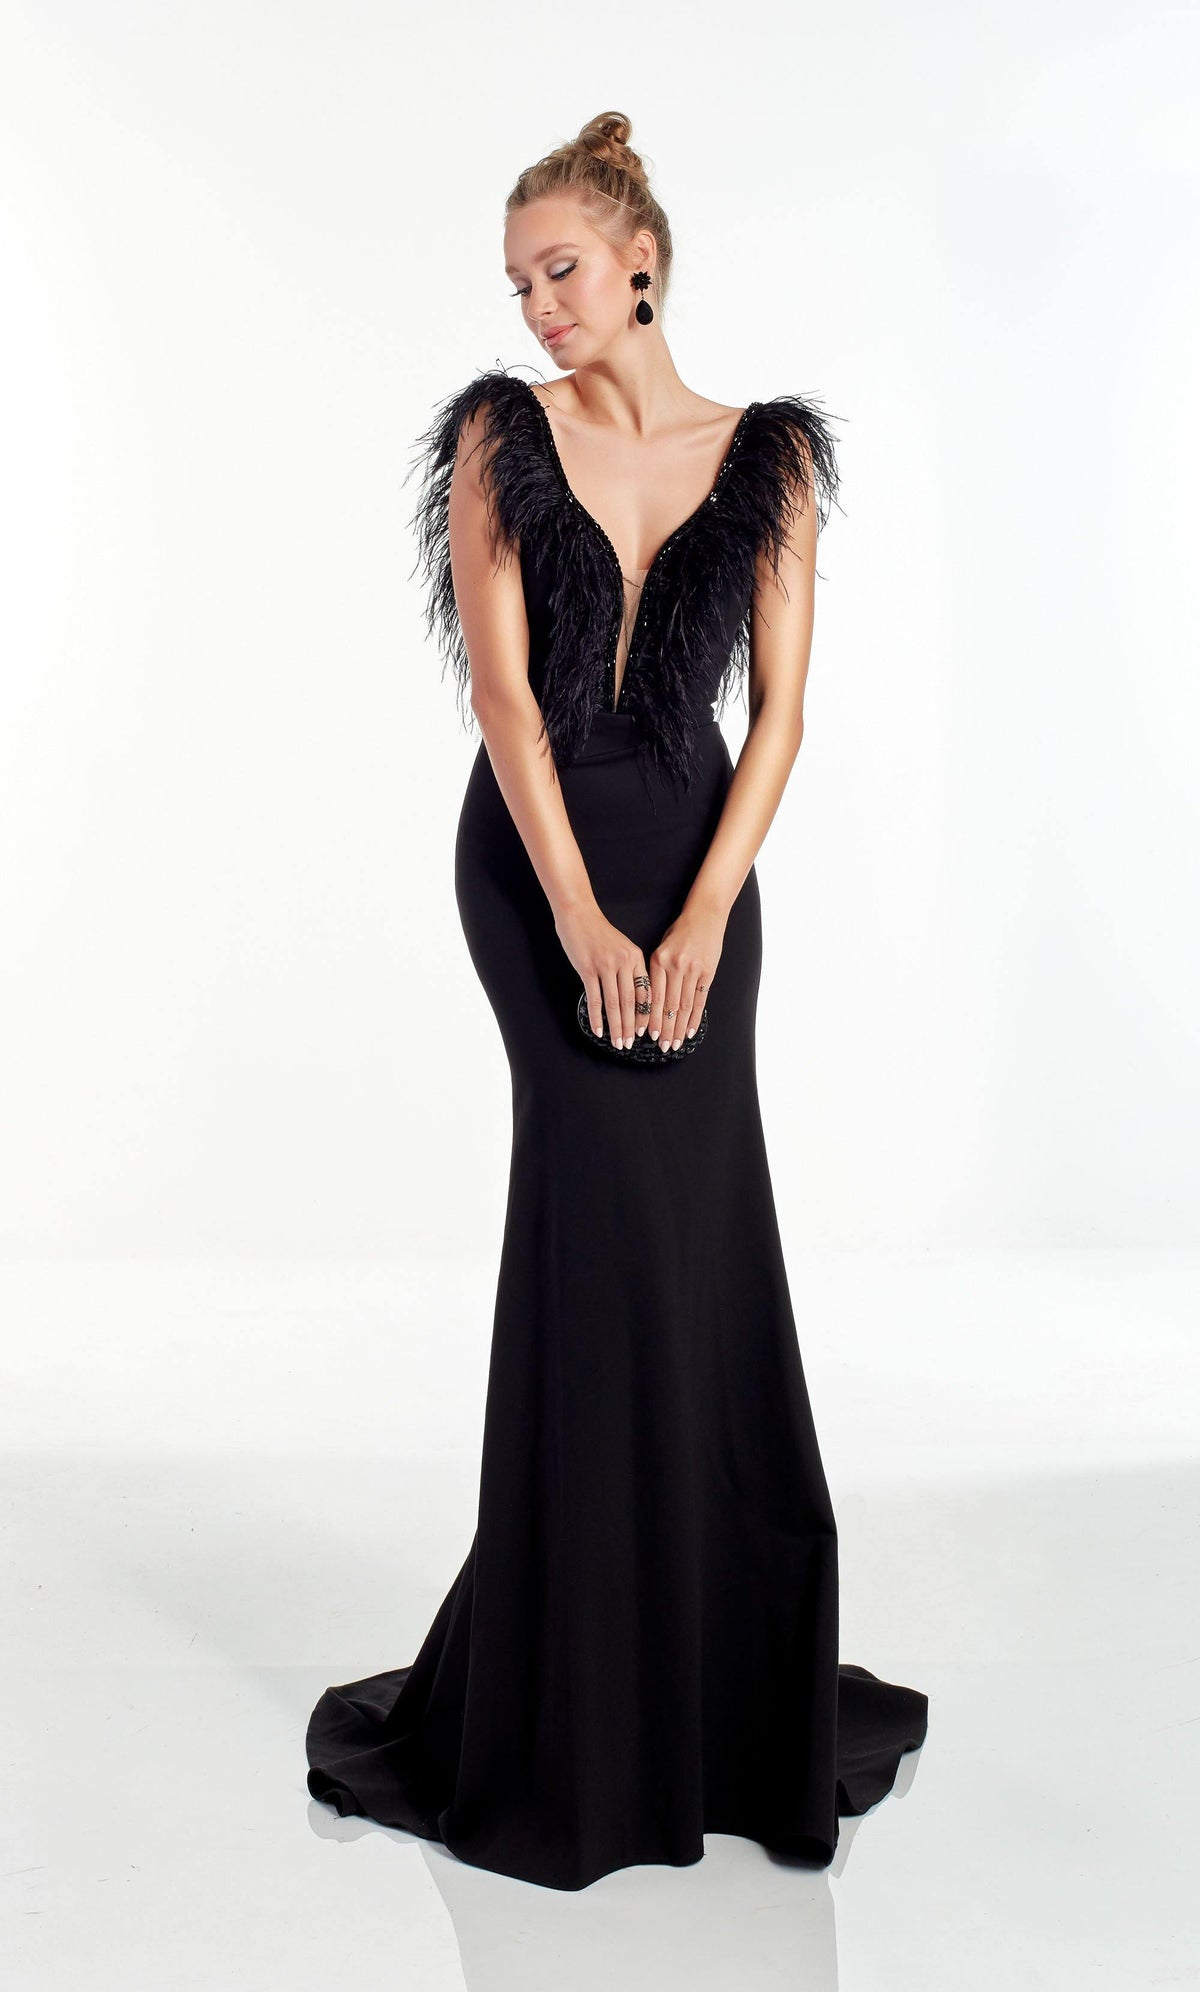 Black evening gown with a plunging, sequin embellished neckline and feather accented bodice